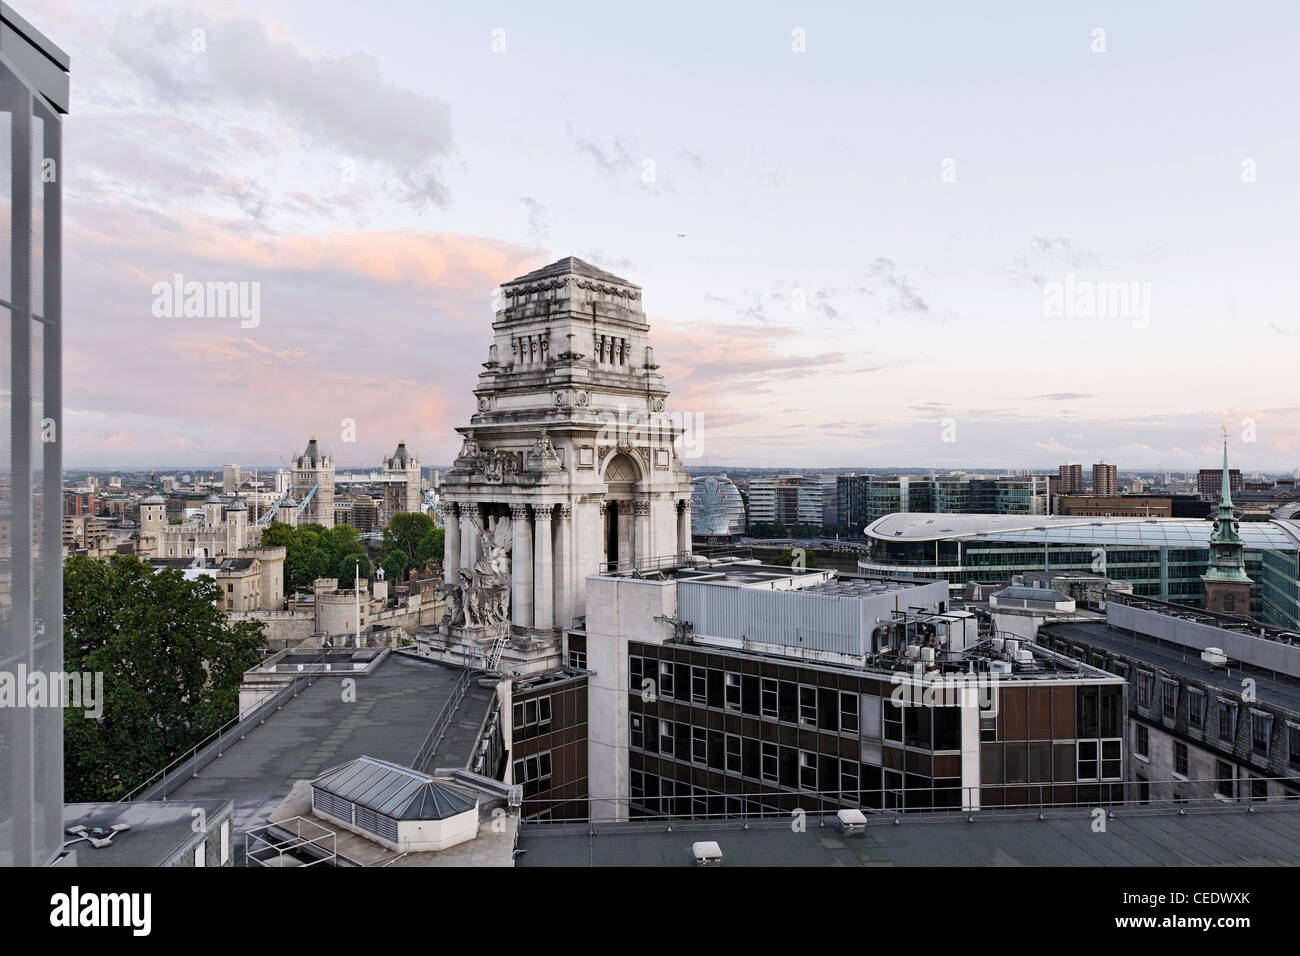 View of Trinity House, Jewel House in the Tower of London, roof terrace MintHotel, Pepys Street, City of London, - Stock Image